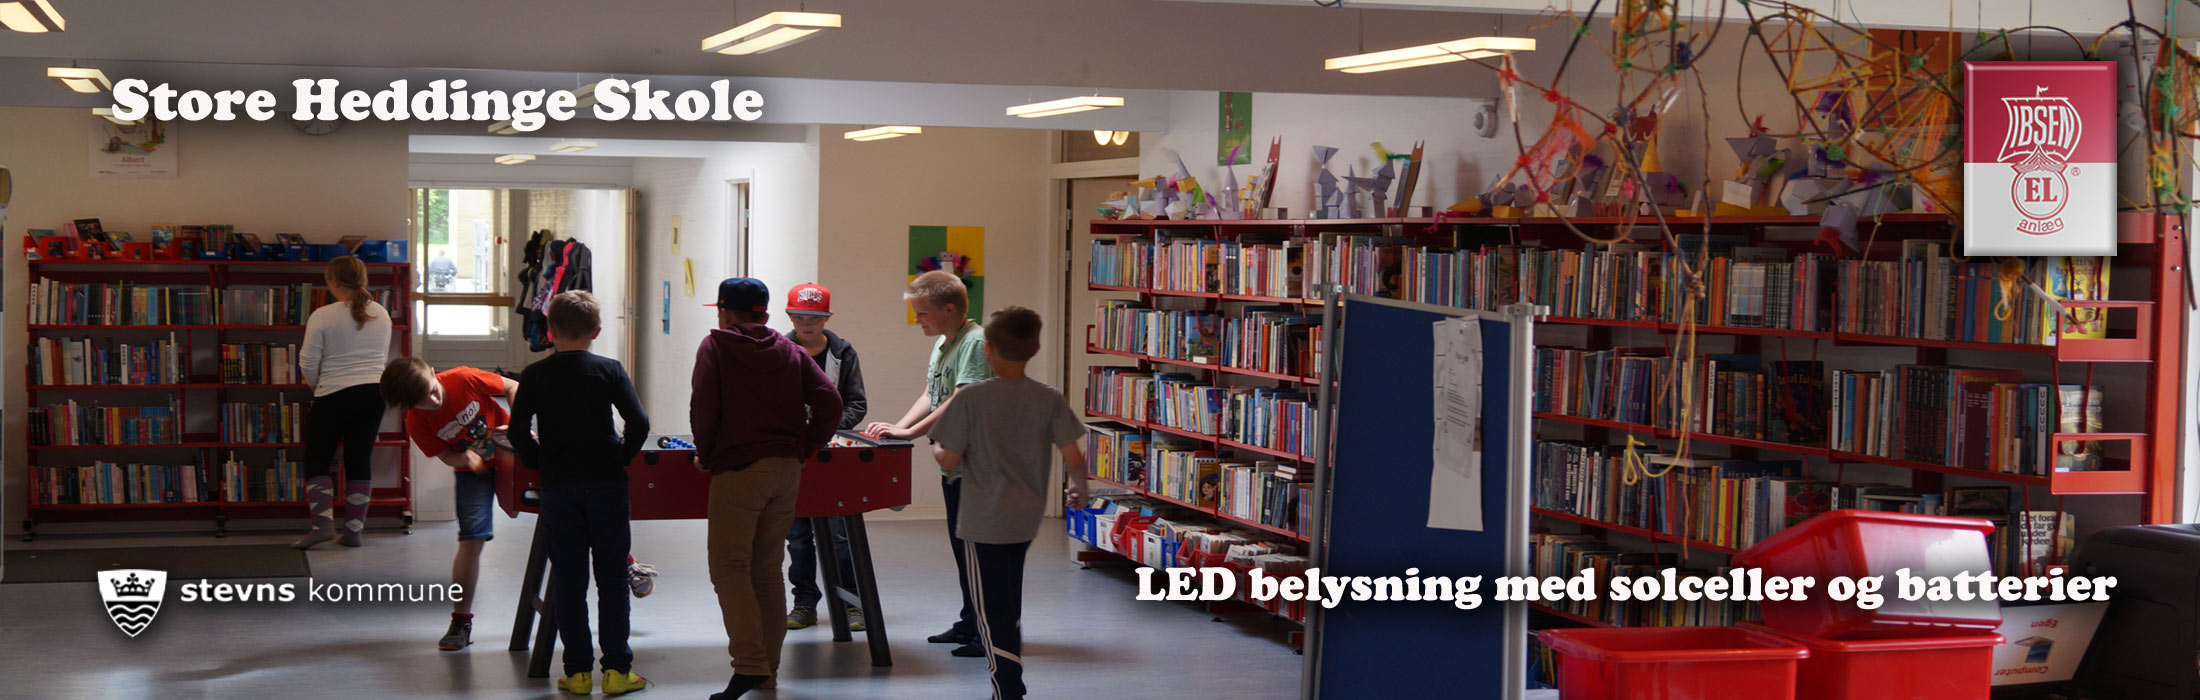 Store-Heddinge-Skole-Armaturer-Design og konstruktion-Kent-Laursen